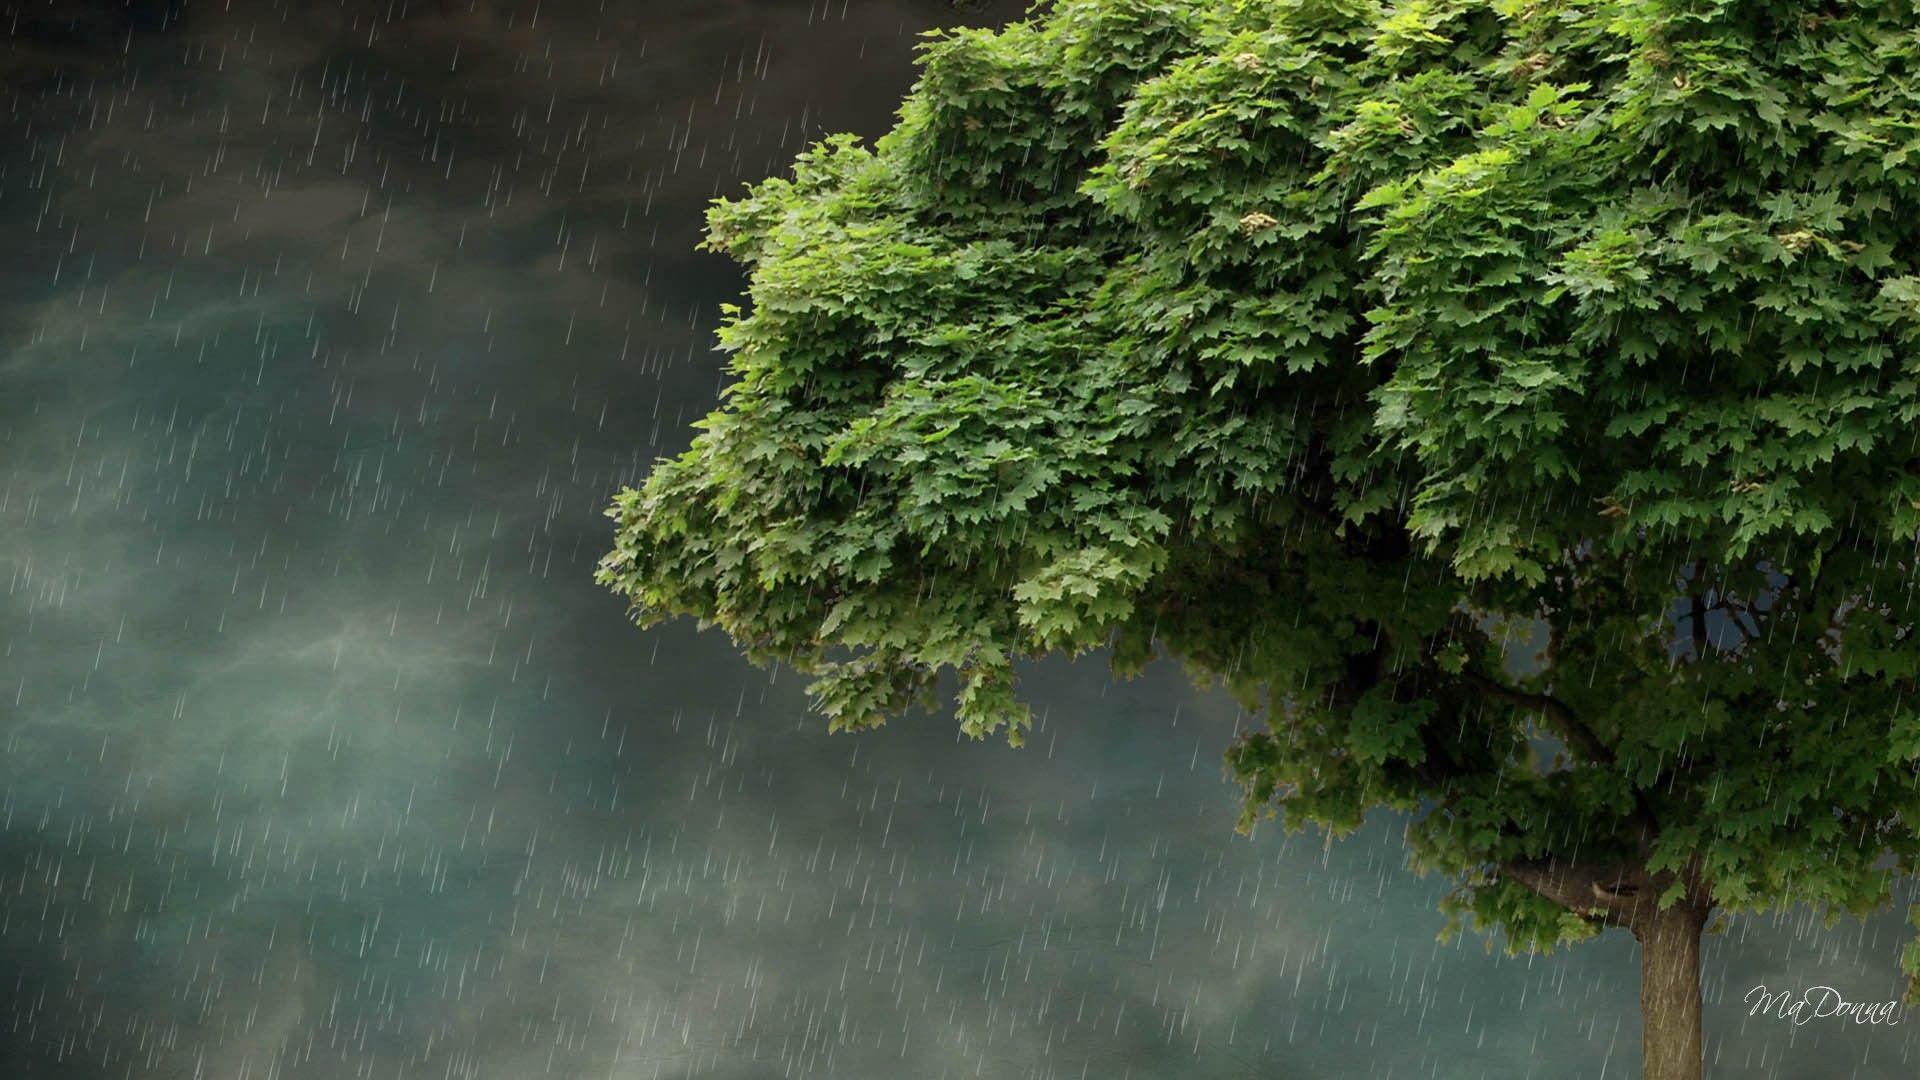 Spring Rain Wallpapers Background Rain Wallpapers Rainy Wallpaper Nature Wallpaper